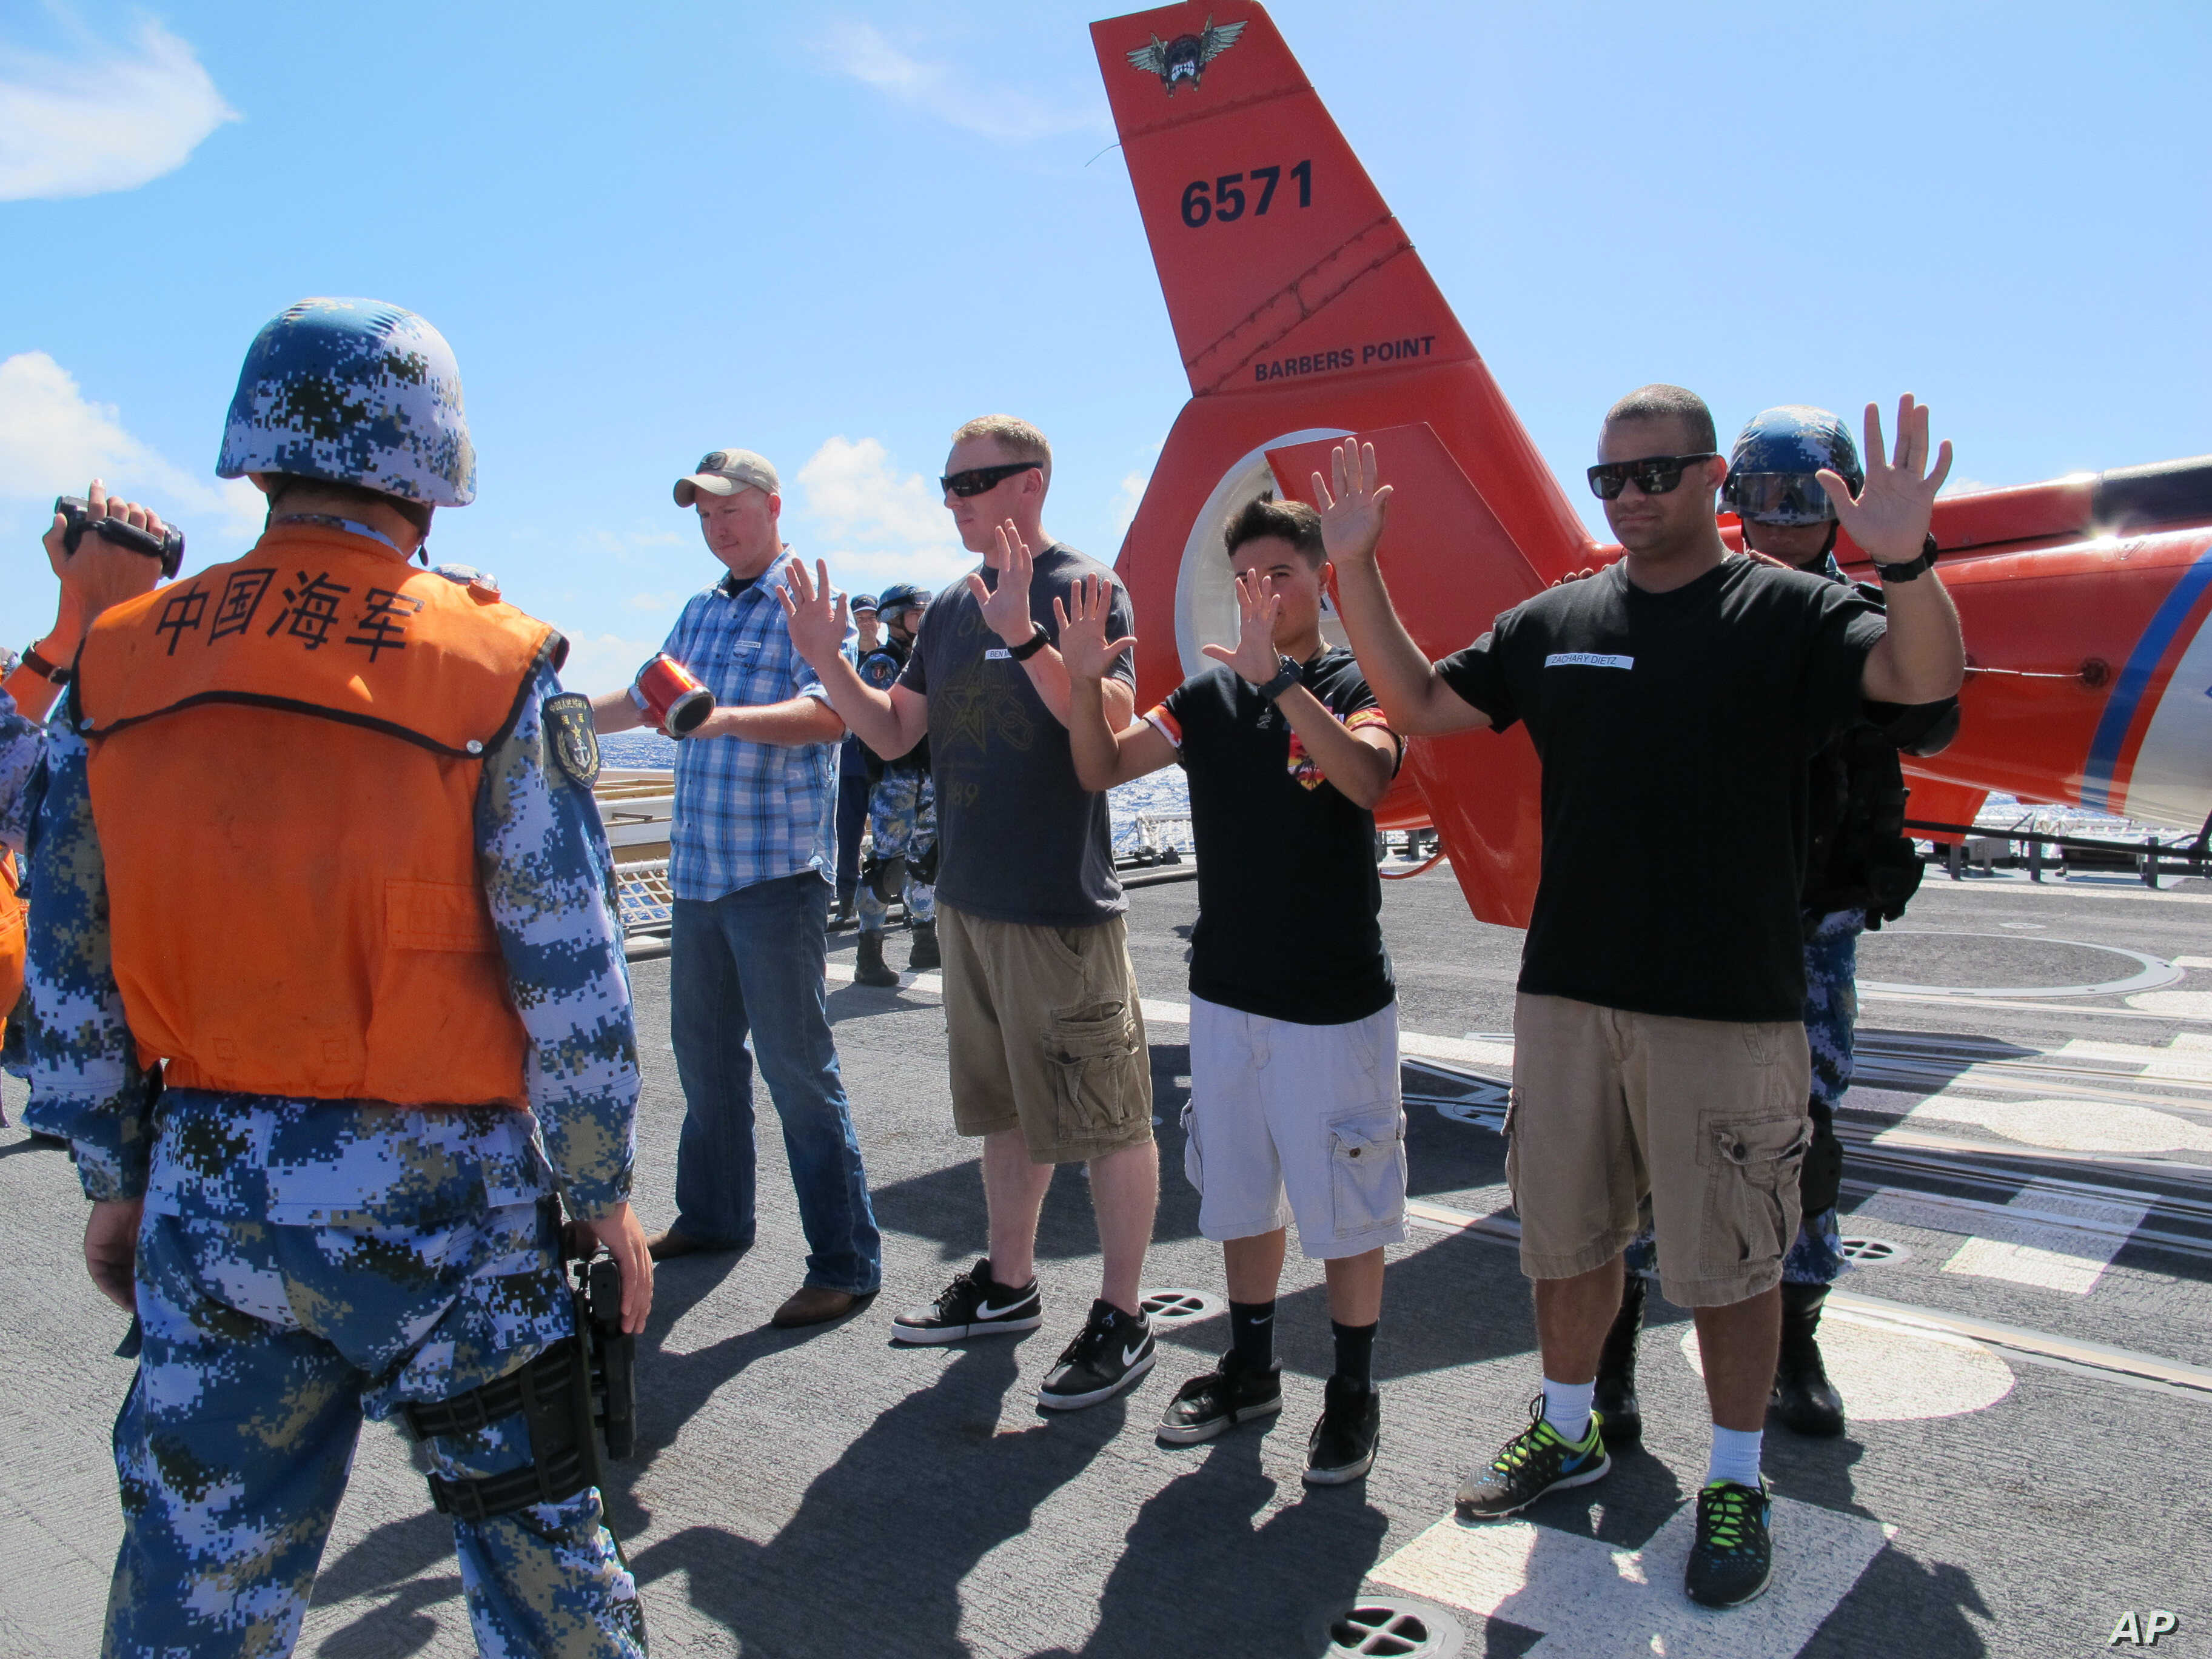 People's Liberation Army sailors pat down U.S. Coast Guardsmen playing the role of merchant mariners aboard the Coast Guard cutter Waesche off Hawaii, July 16, 2014. Chinese sailors boarded the Coast Guard cutter Waesche for a drill checking cargo as...